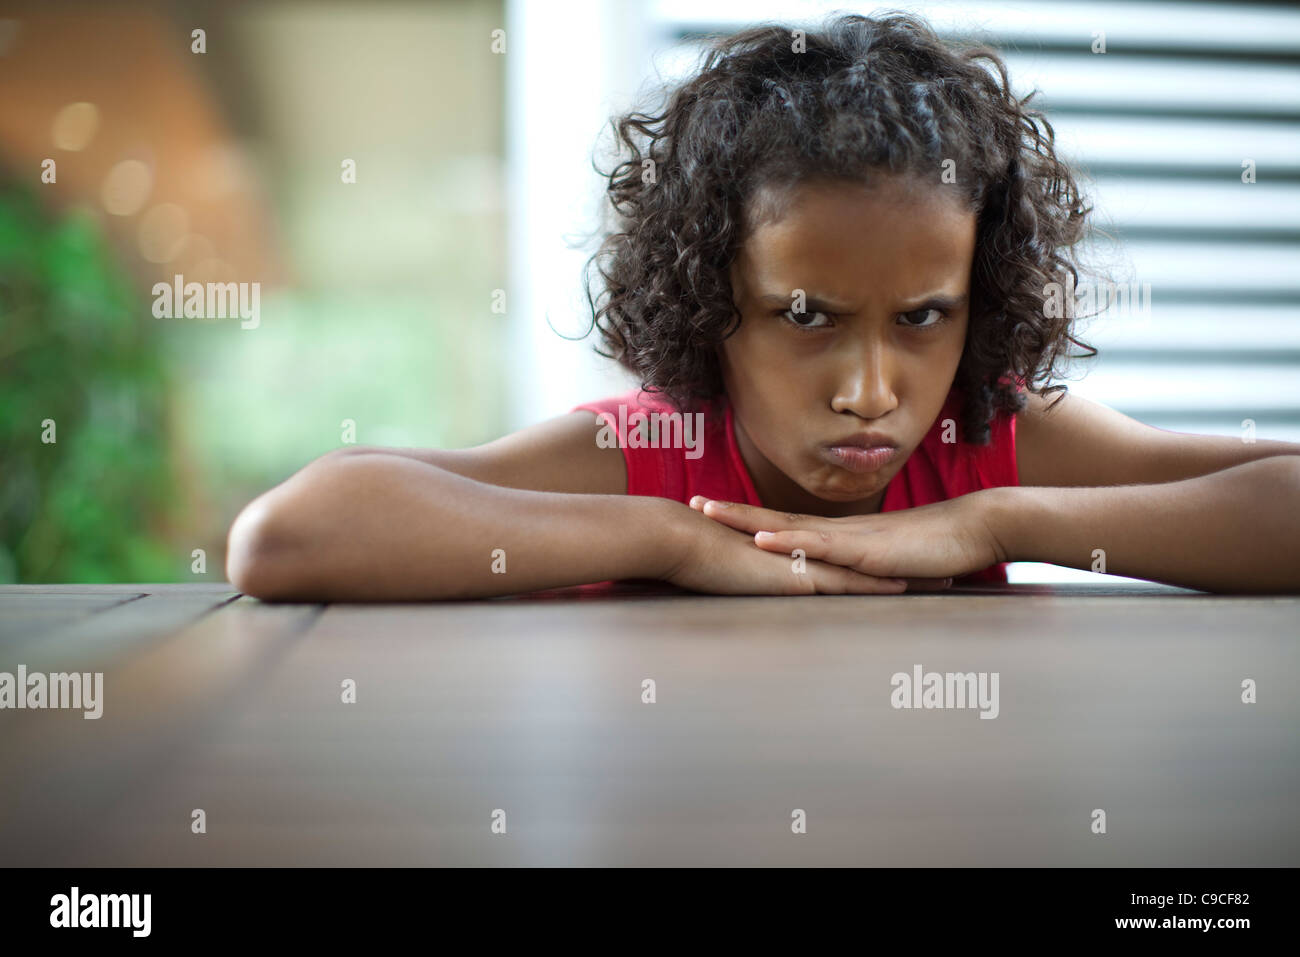 Sulky girl scowling at camera - Stock Image